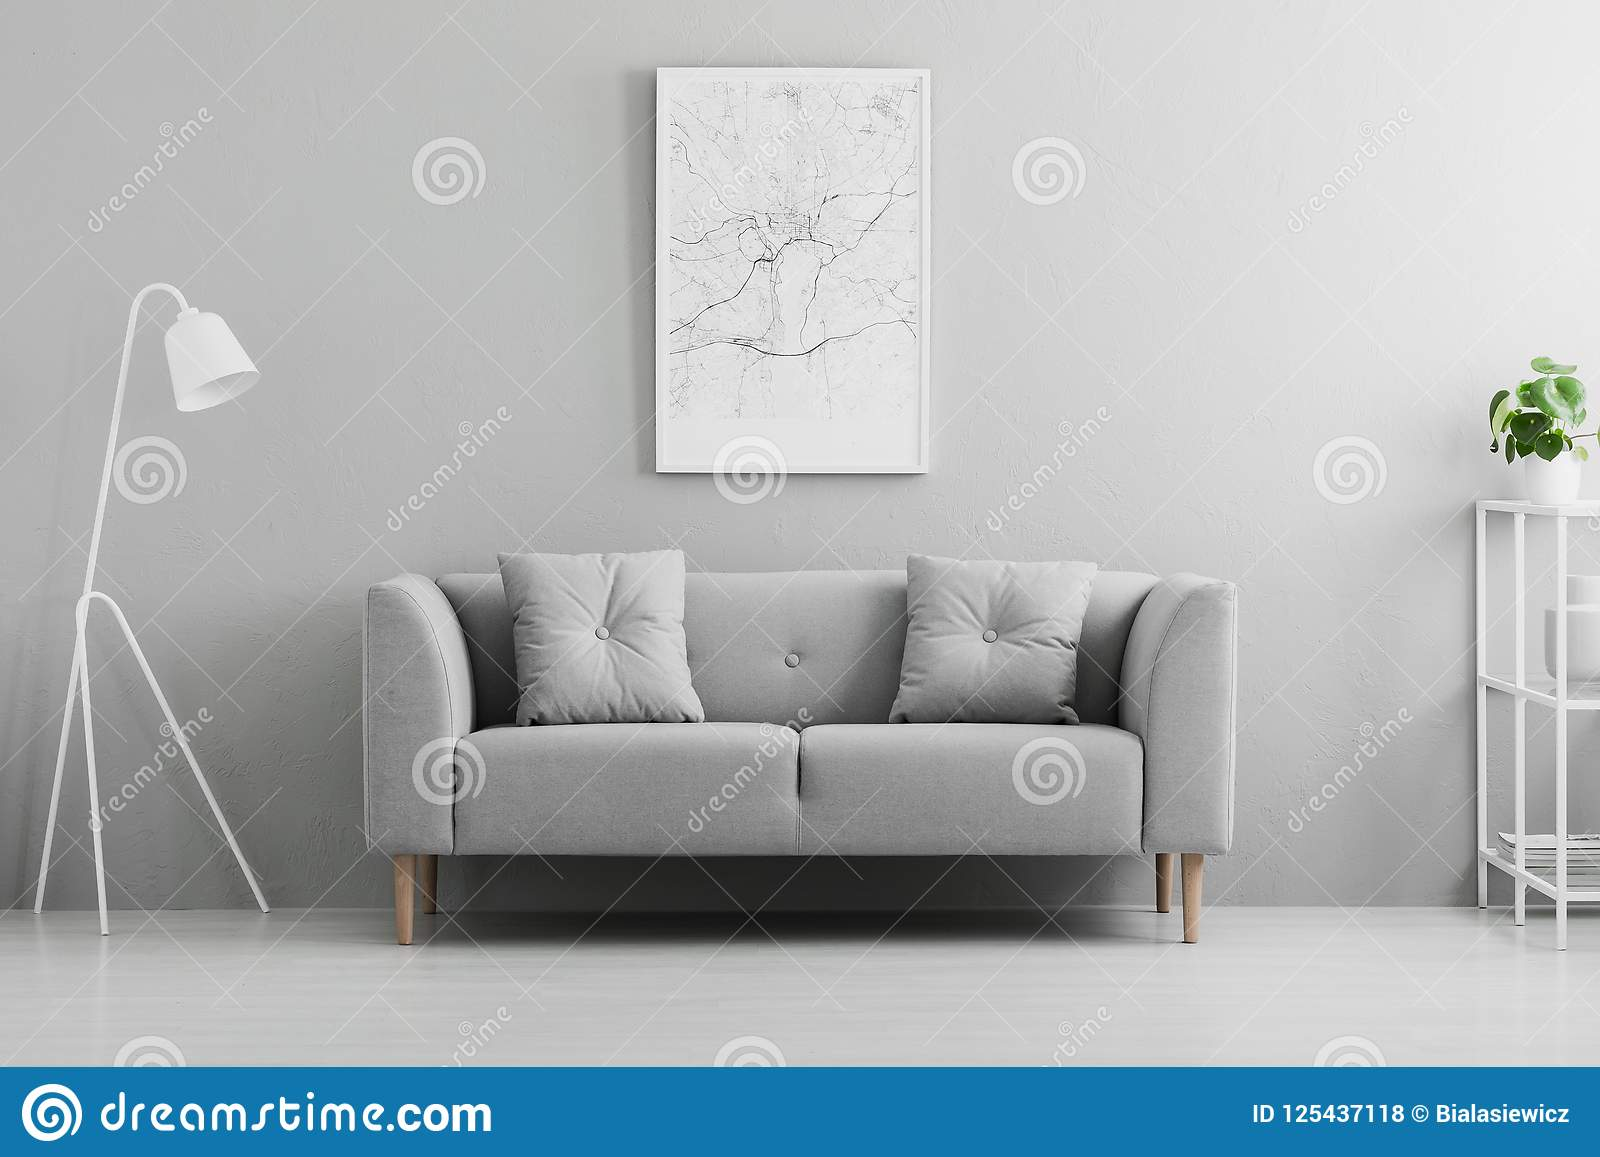 White lamp next to grey couch in minimal living room interior wi